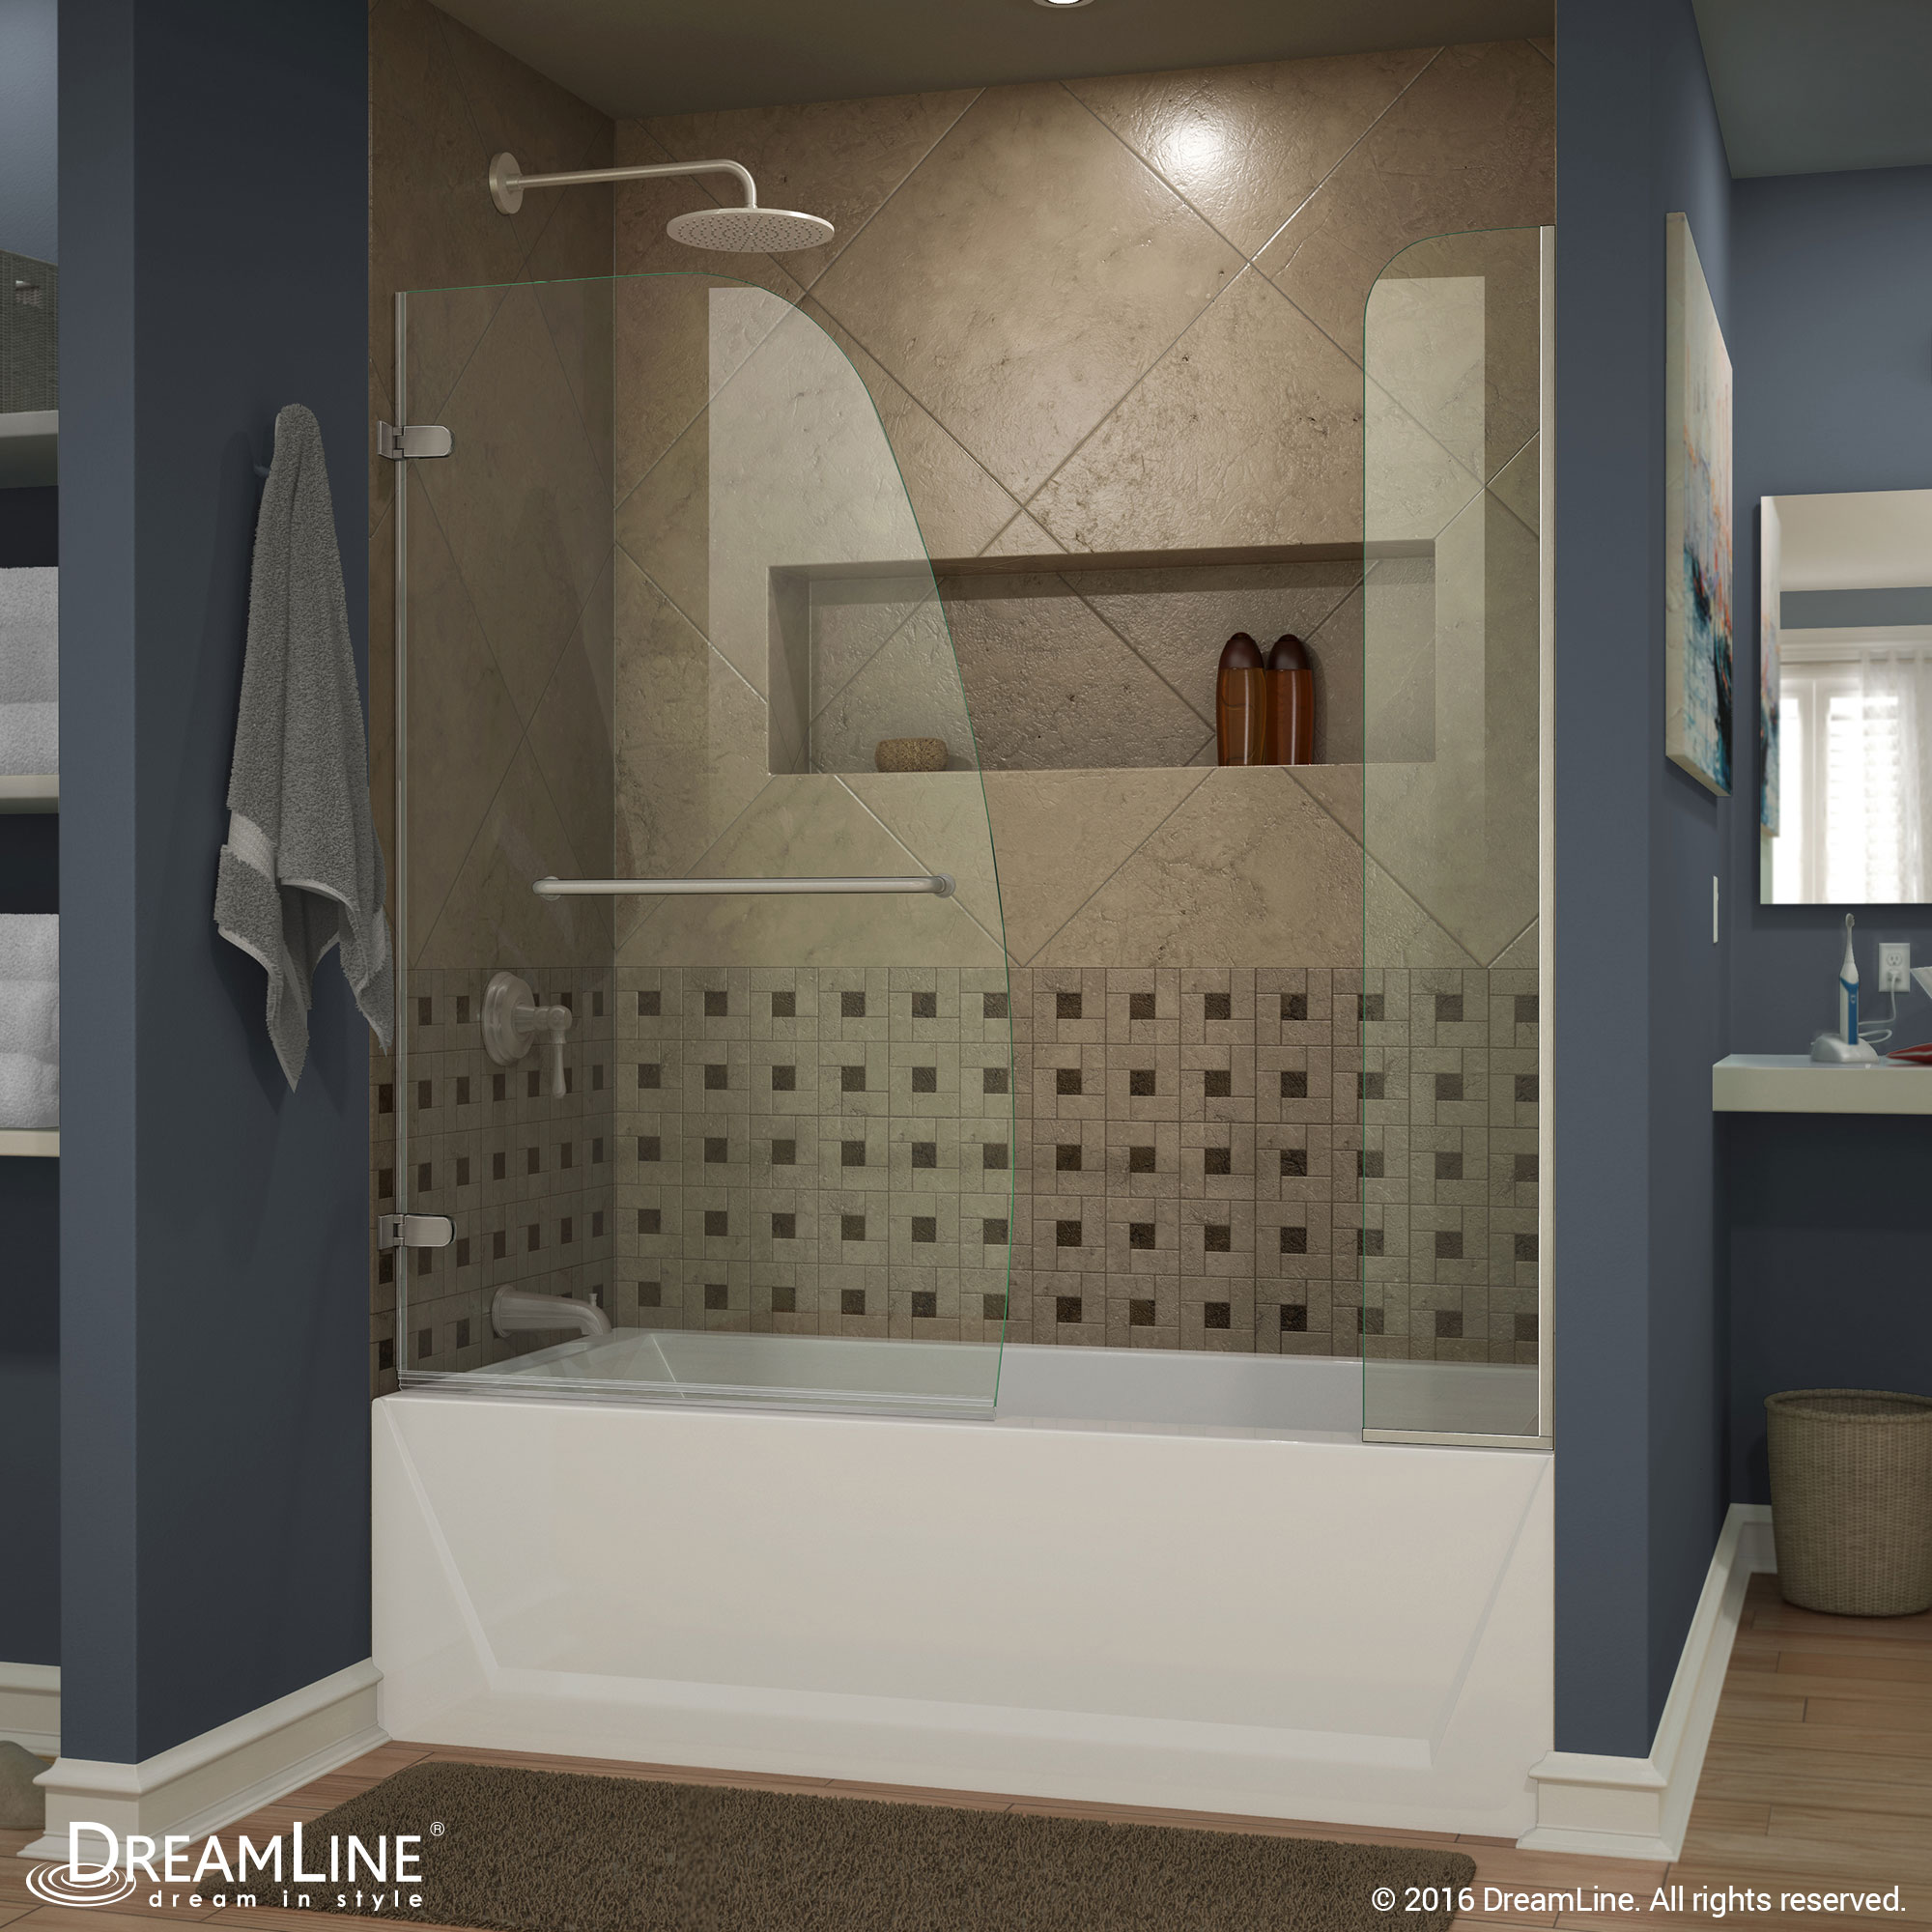 DreamLine Aqua Uno 56-60 in. W x 58 in. H Frameless Hinged Tub Door with Extender Panel in Chrome